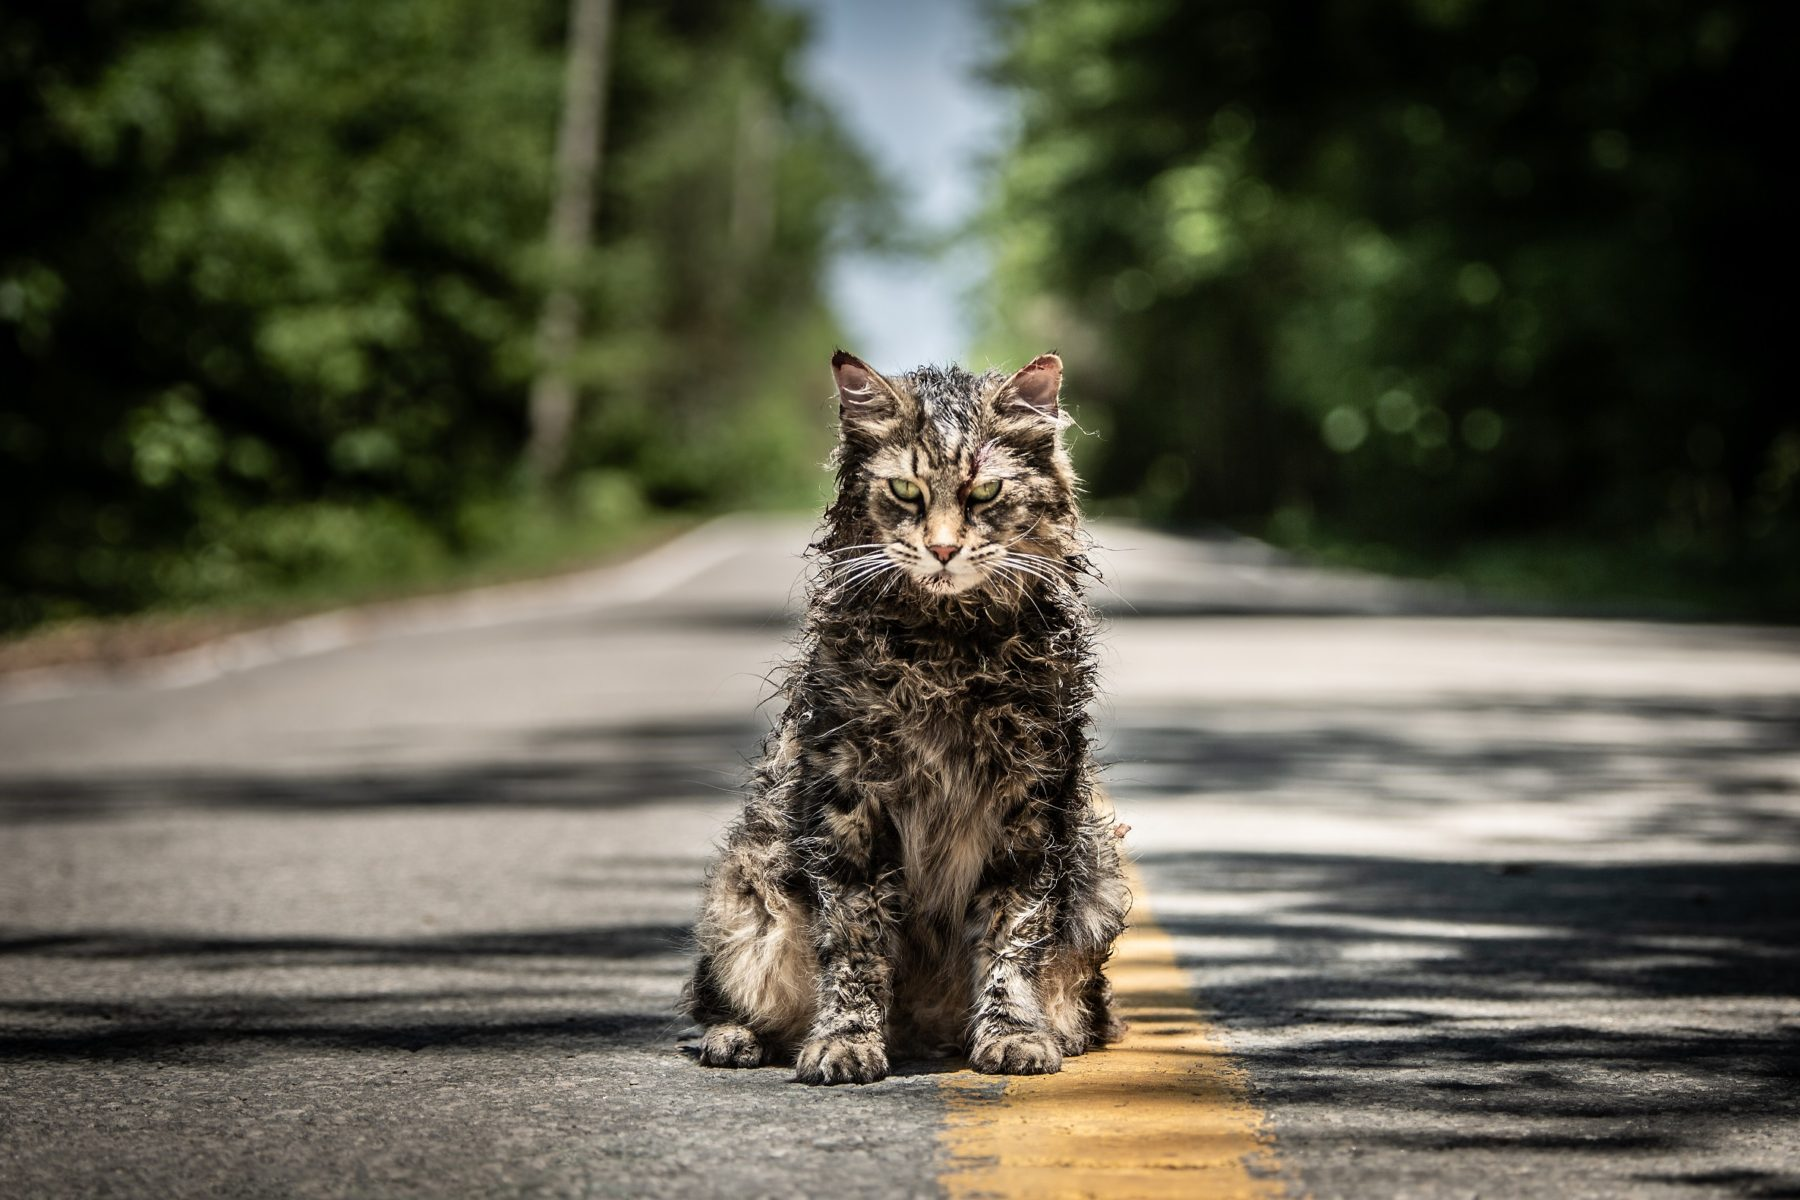 Pet Sematary' in 4DX Theaters: Motion-synchronized seats, wind, fog, rain, lightning, snow, bubbles, vibrations, and scents | Bloody Disgusting